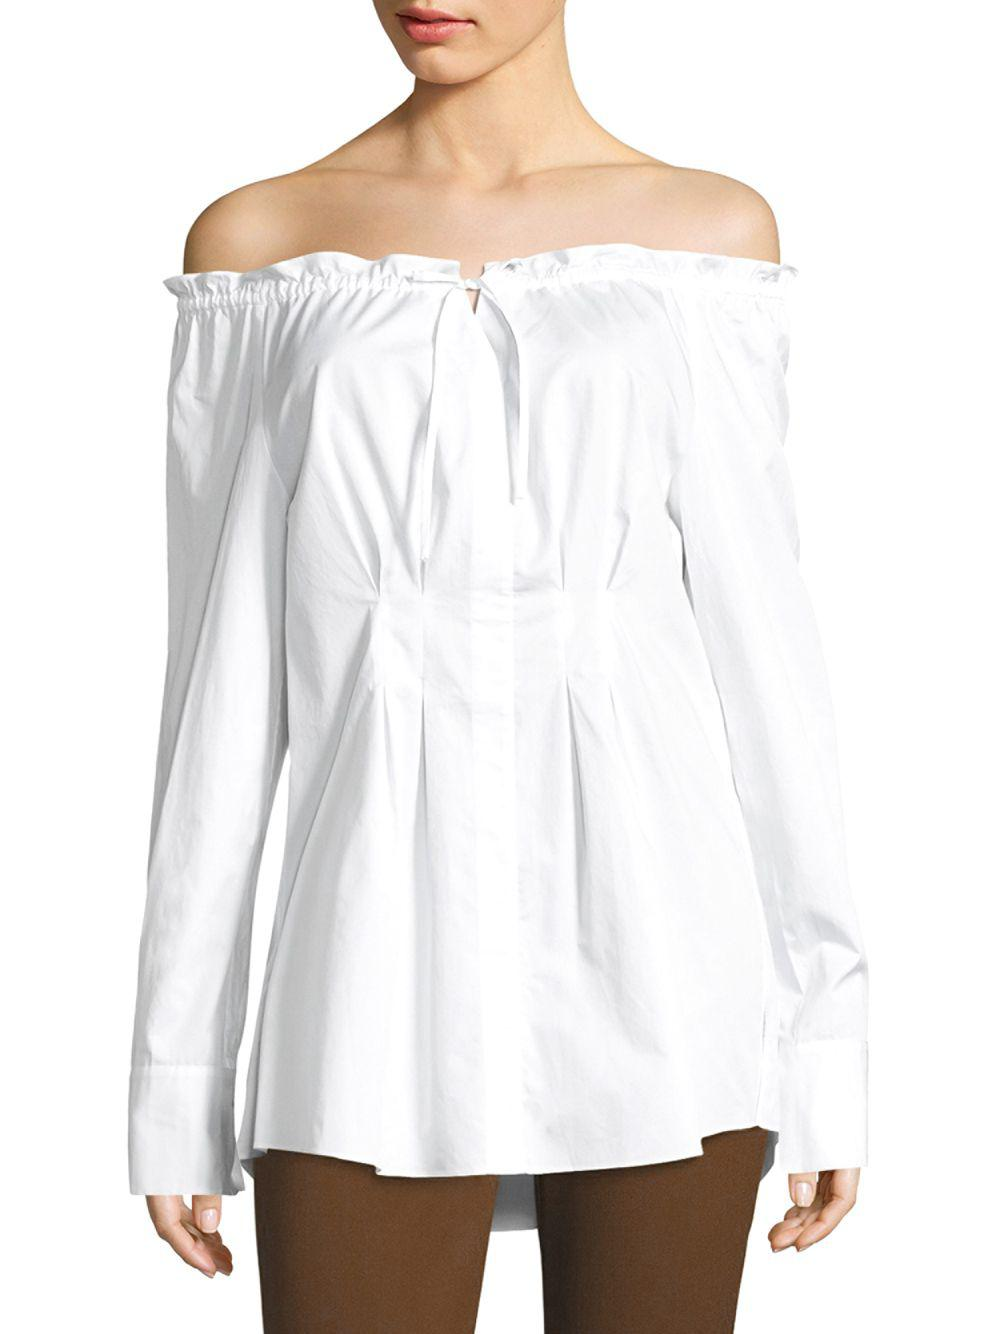 3e0dae2cbda Tibi Ruched Off-the-shoulder Shirt in White - Save 25% - Lyst